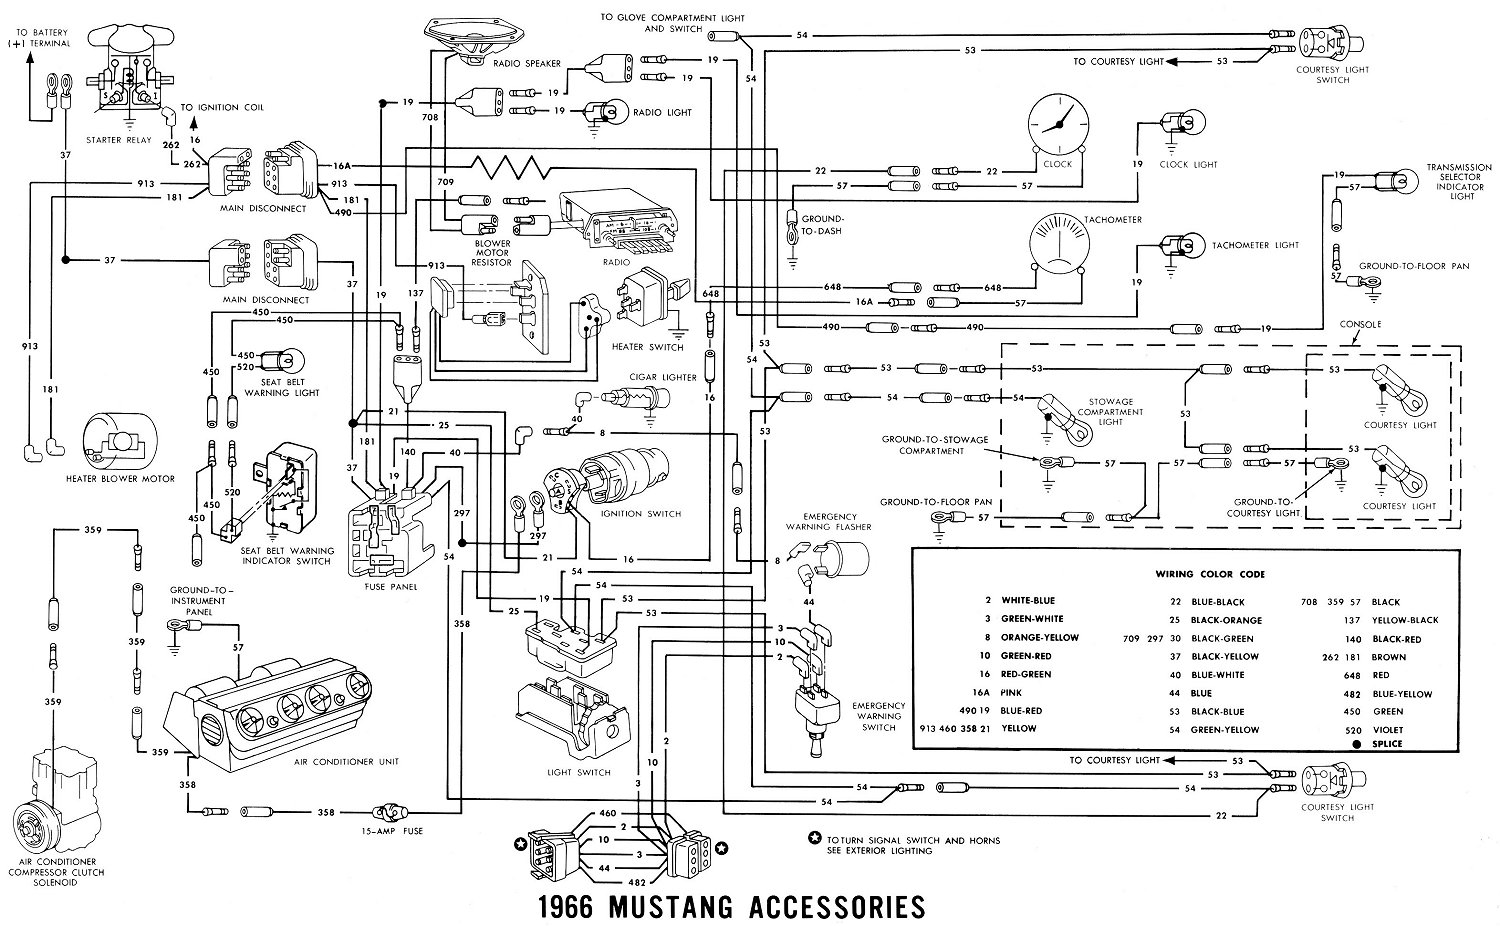 1963 corvette headlight switch wiring diagram